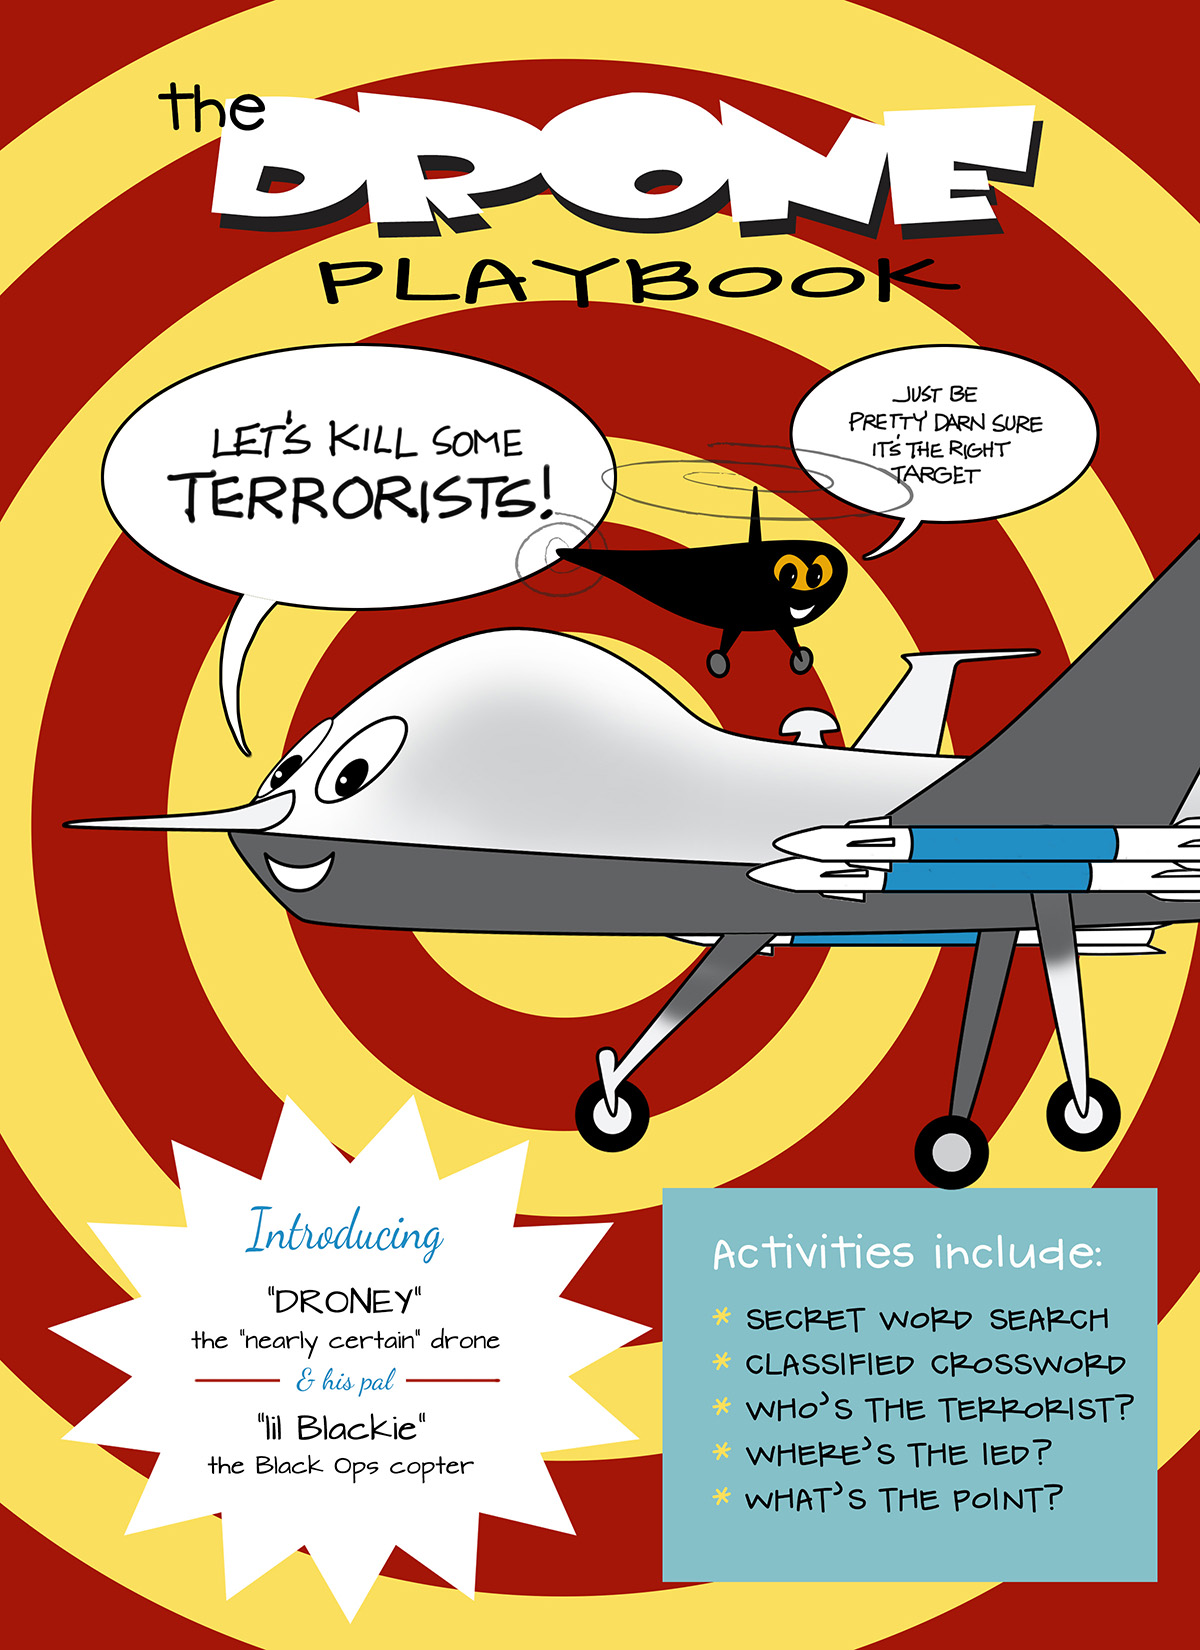 Drone play book